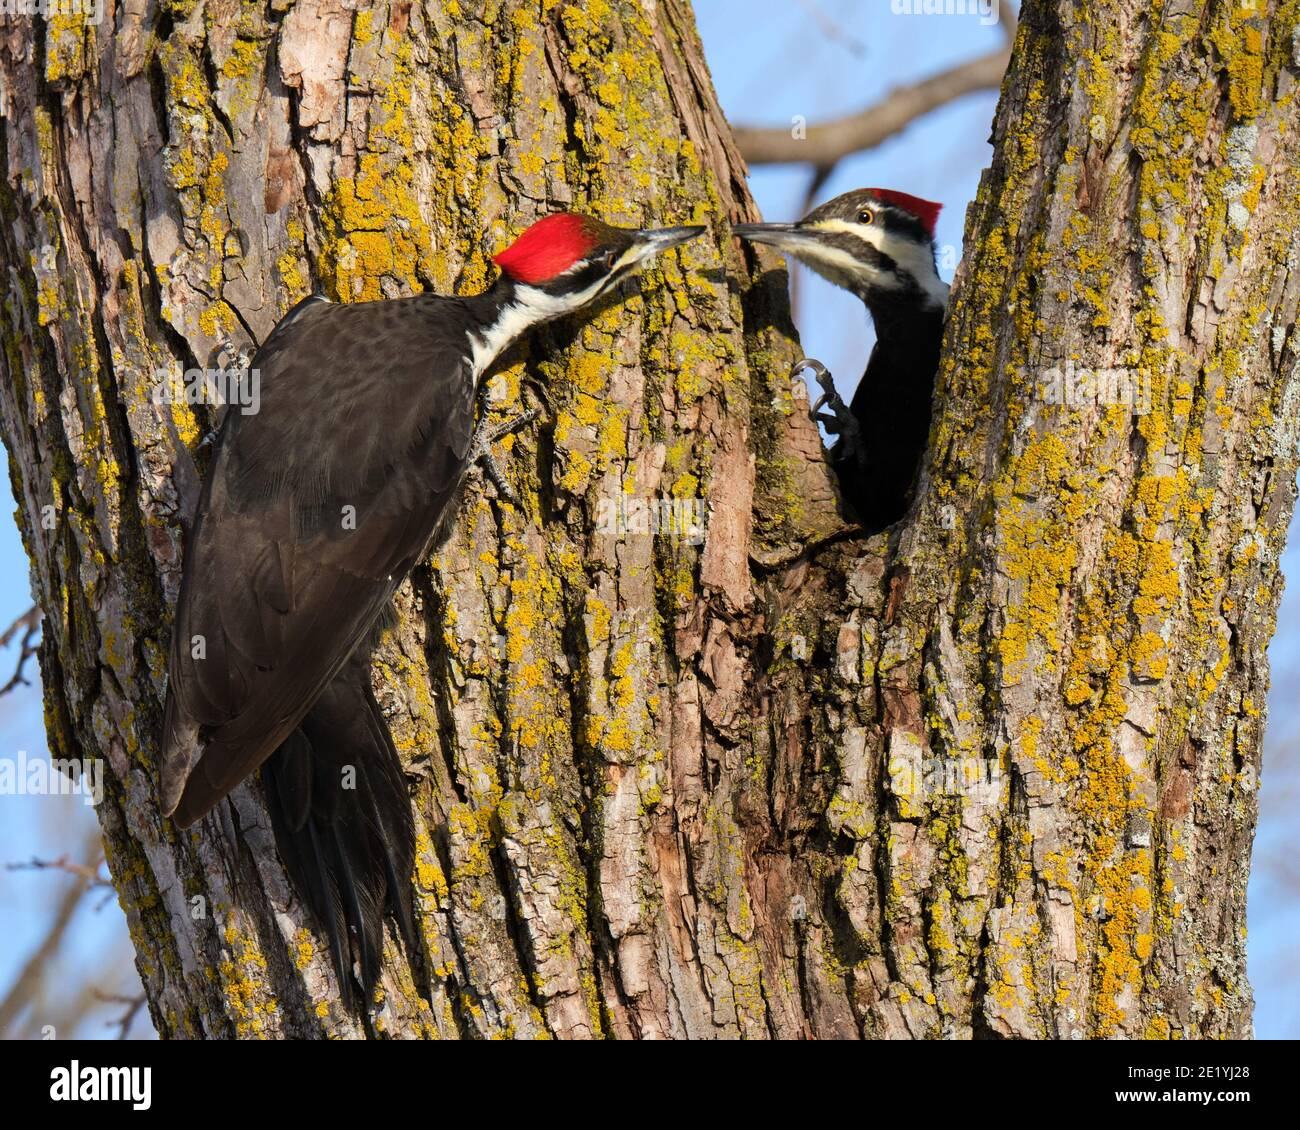 a-pair-of-female-pileated-woodpeckers-latin-dryocopus-pileatus-coming-beak-to-beak-on-a-crisp-winter-morning-the-powerful-bill-about-as-long-as-the-head-is-used-to-chisel-away-decaying-trees-to-reach-insects-the-bird-was-recently-chosen-as-the-bird-of-the-year-for-2021-by-the-american-birding-association-aba-2E1YJ28.jpg